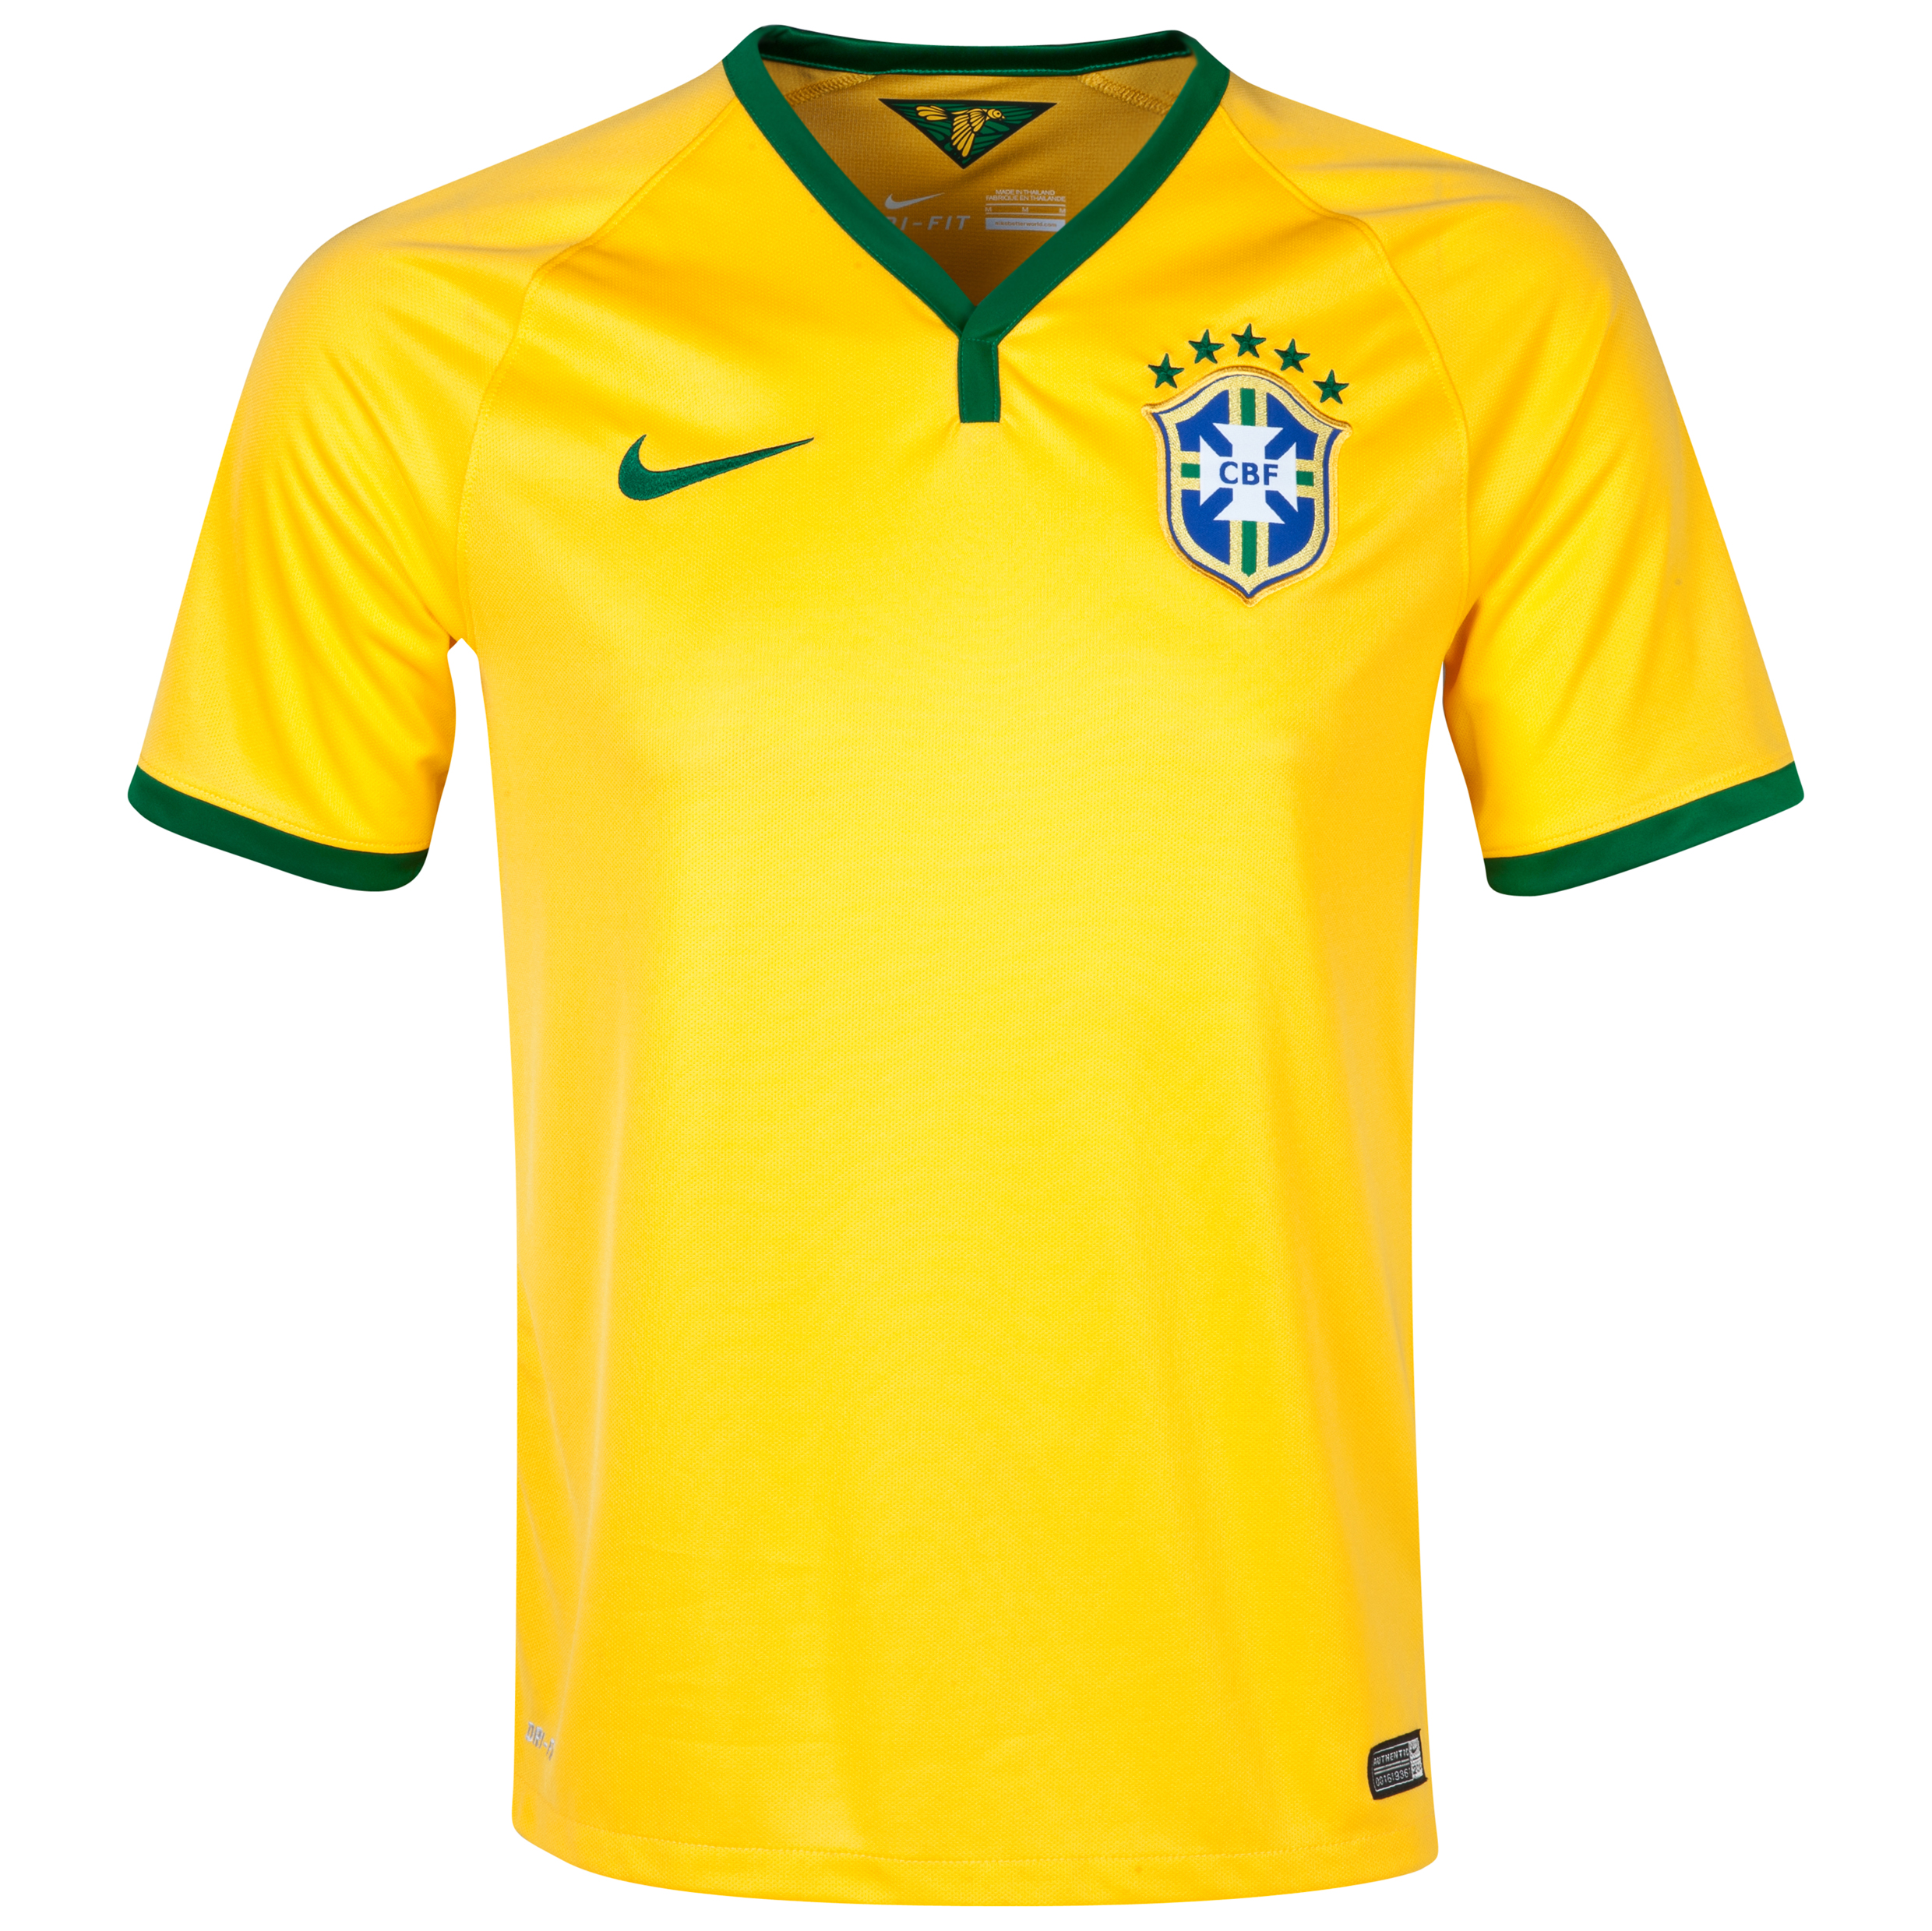 Brazil Home Shirt Yellow 2013/14